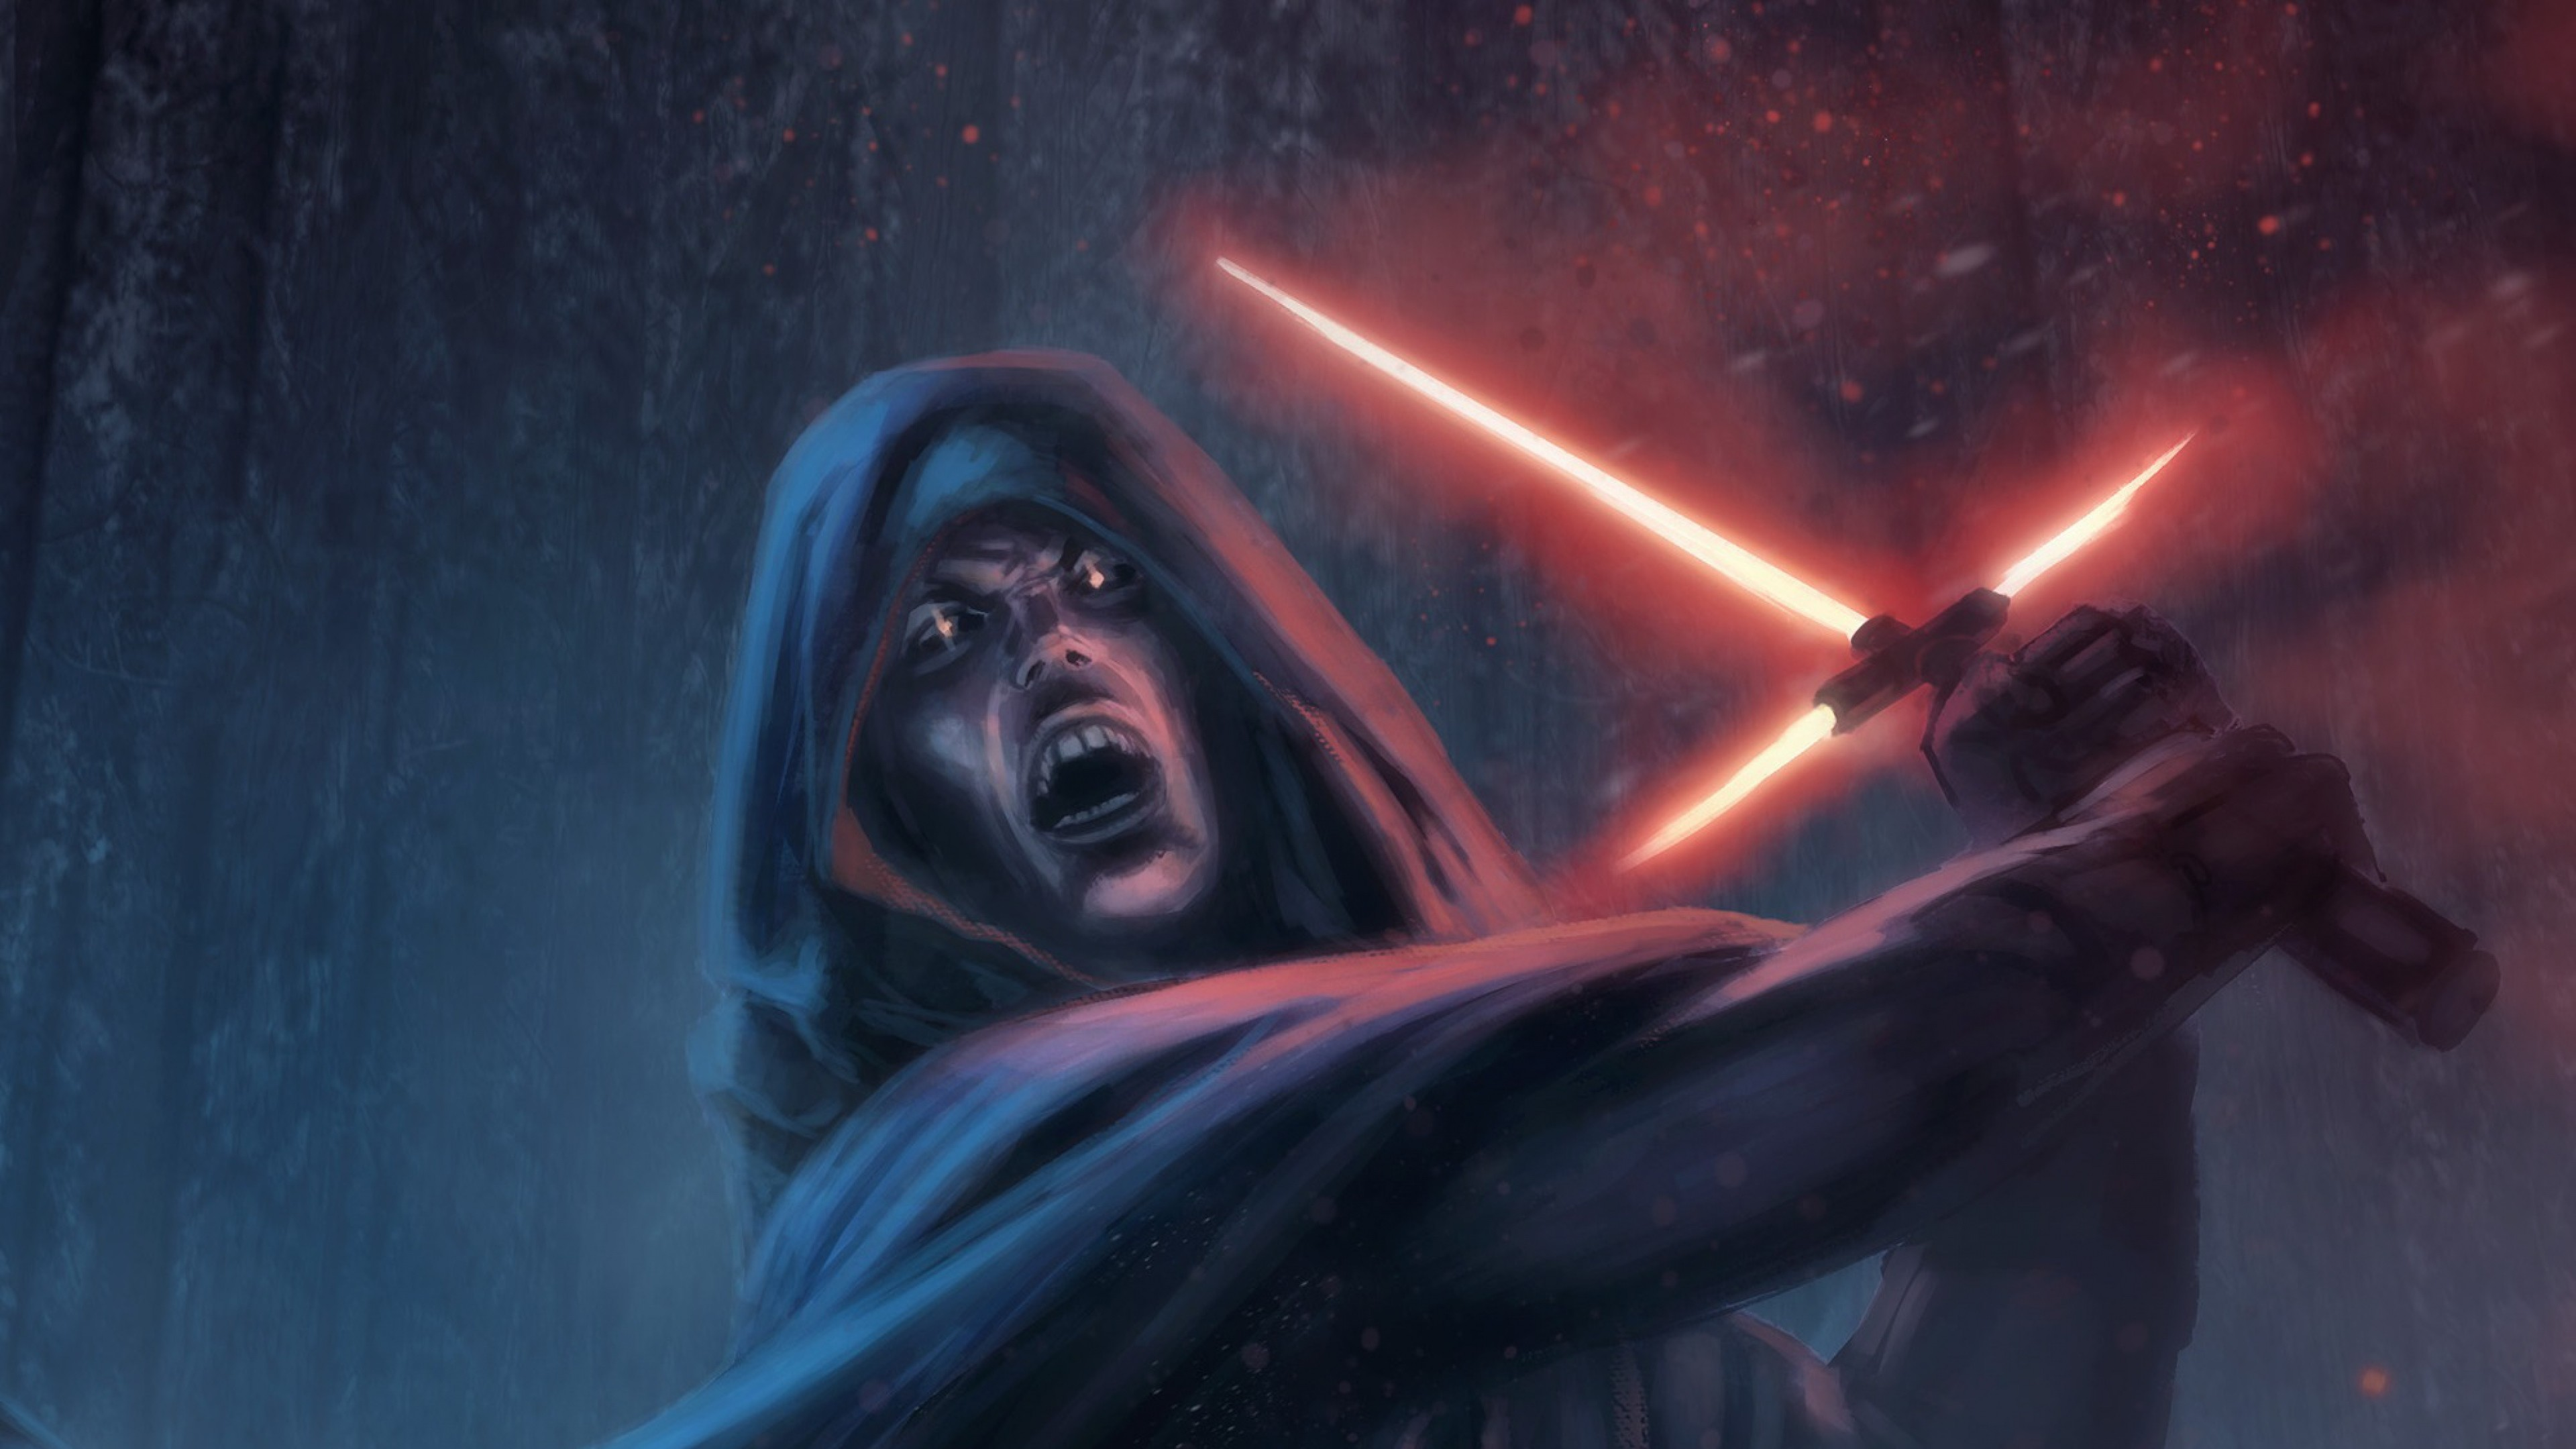 3840x2160 Preview wallpaper star wars episode vii - the force awakens, sith,  lightsaber